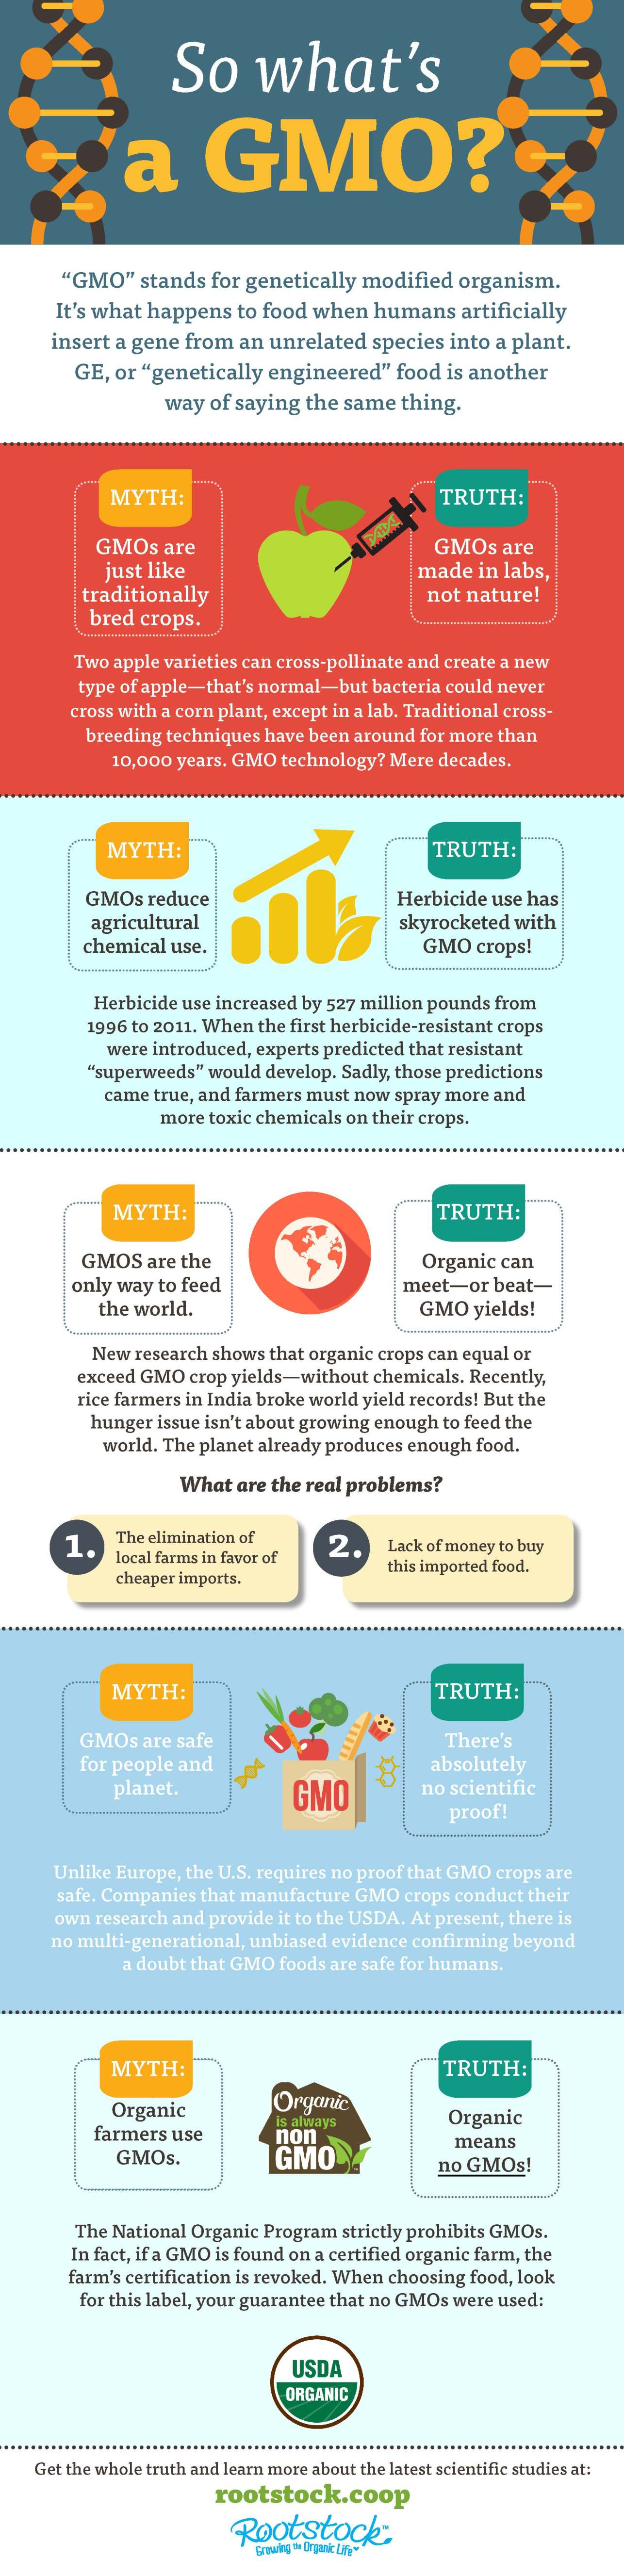 This infographic explains what a GMO is.